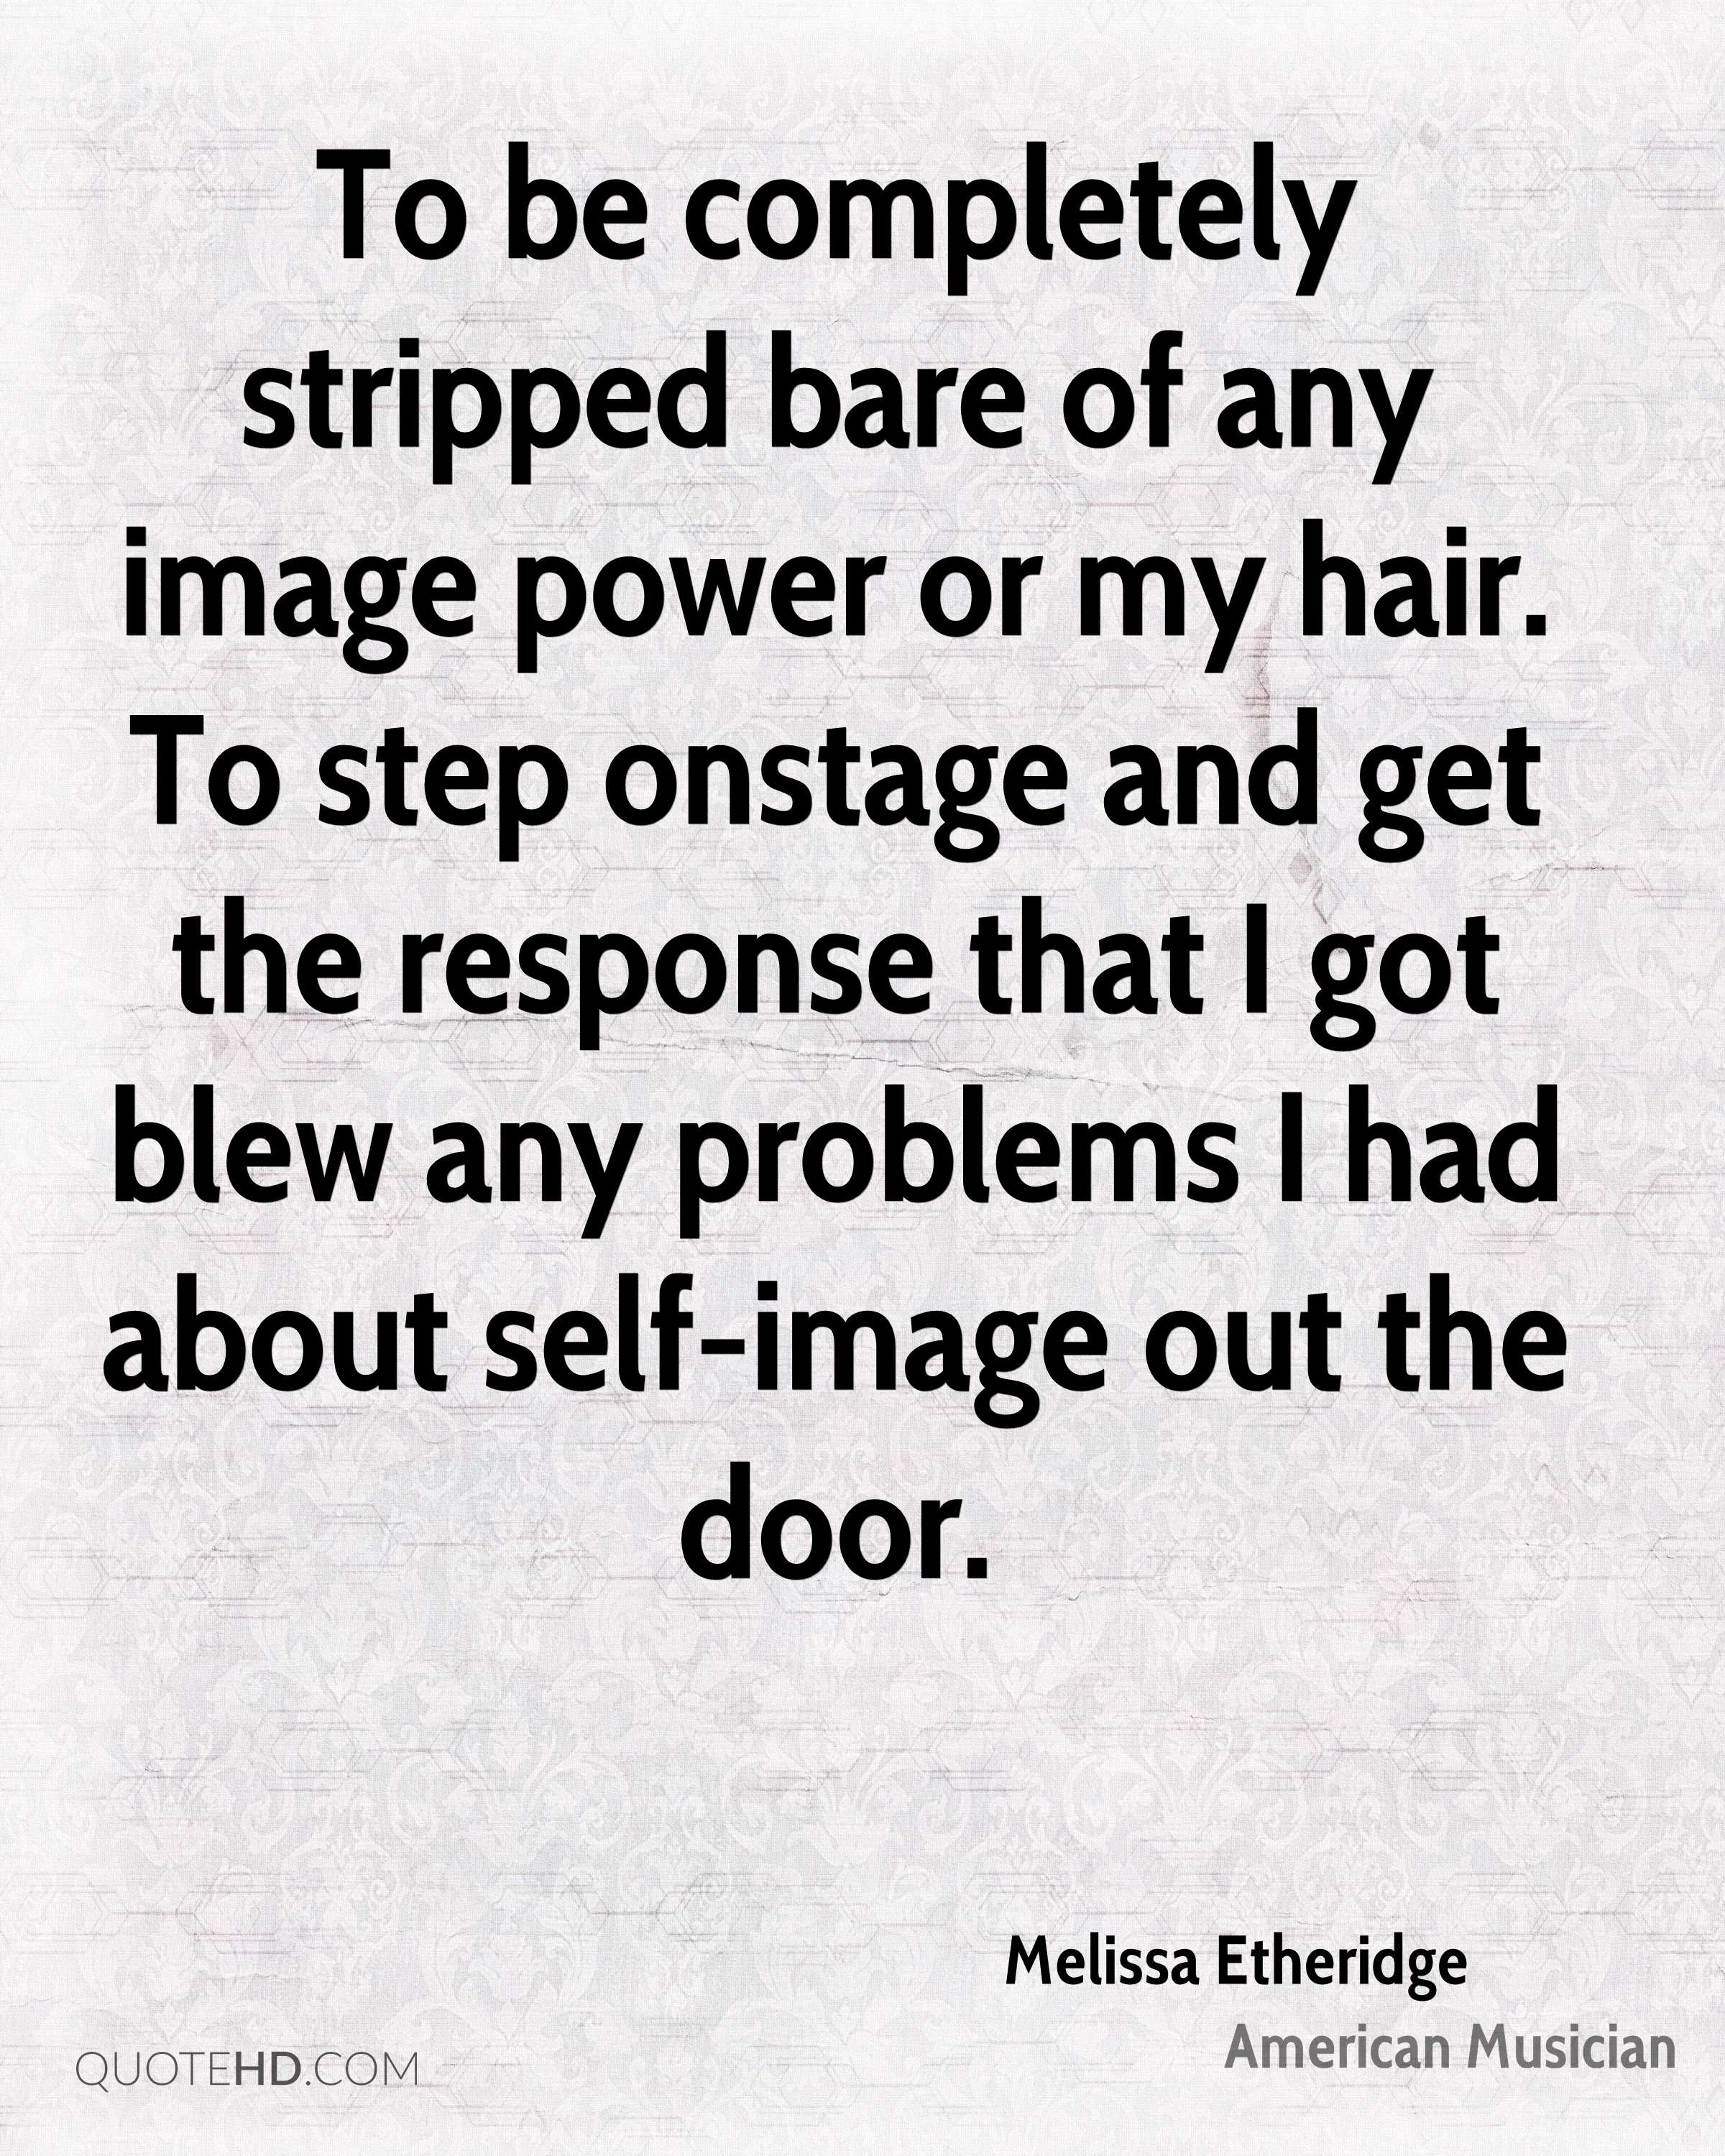 To be completely stripped bare of any image power or my hair. To step onstage and get the response that I got blew any problems I had about self-image out the door.